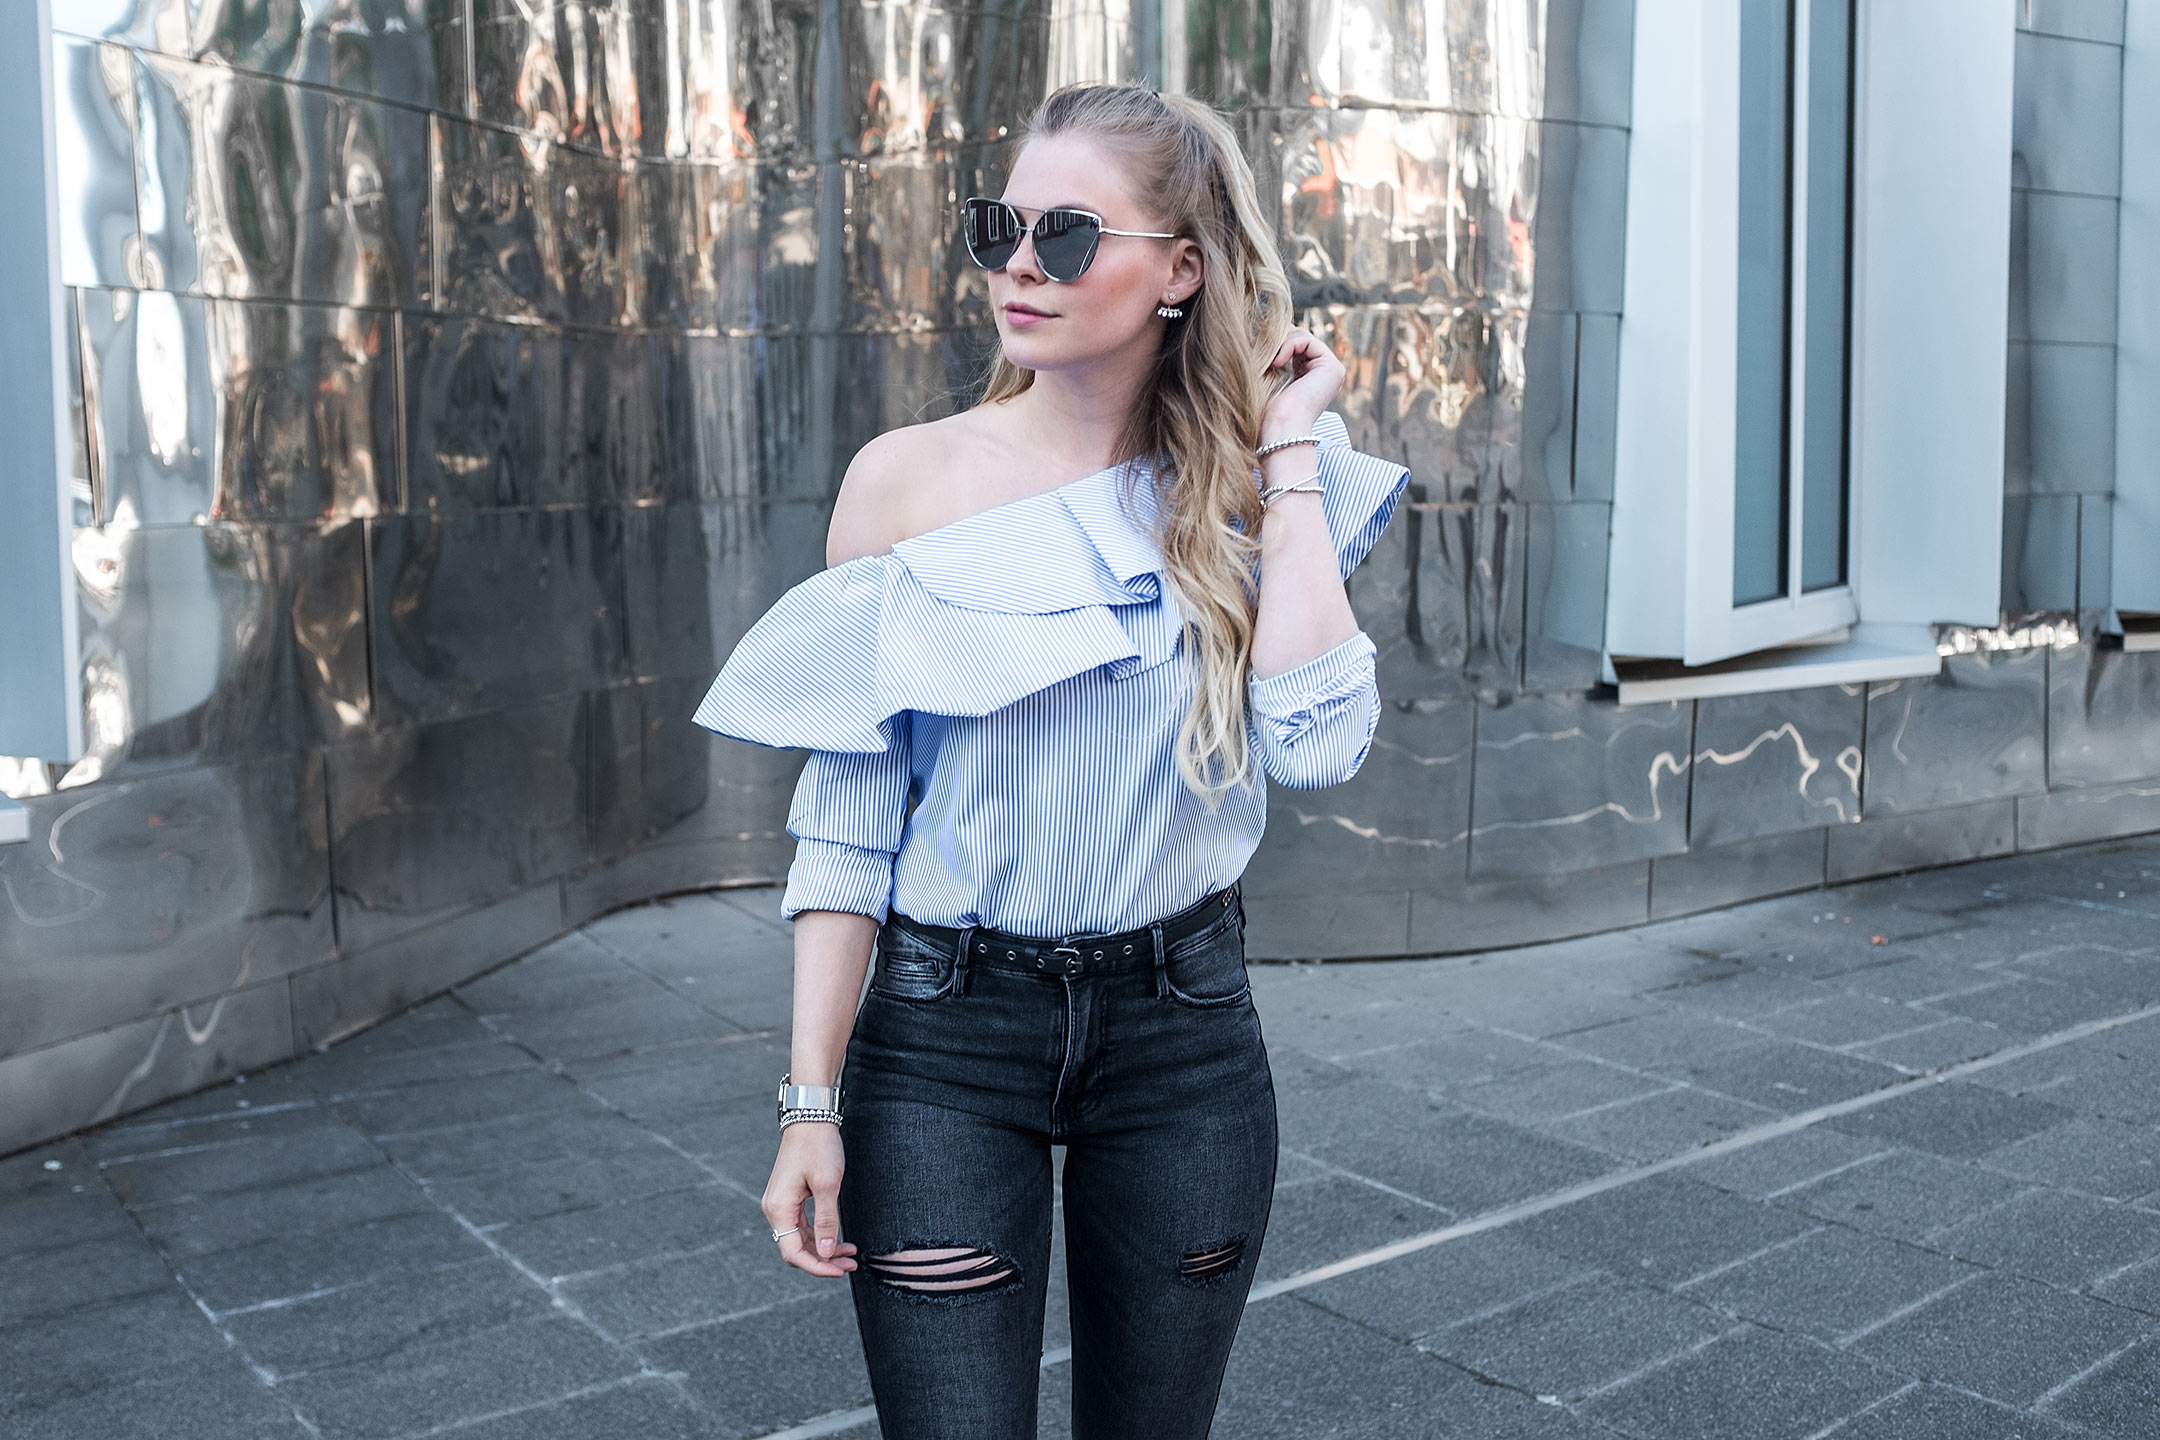 Loavies One Shoulder Bluse Sunnyinga Fashionblog Düsseldorf